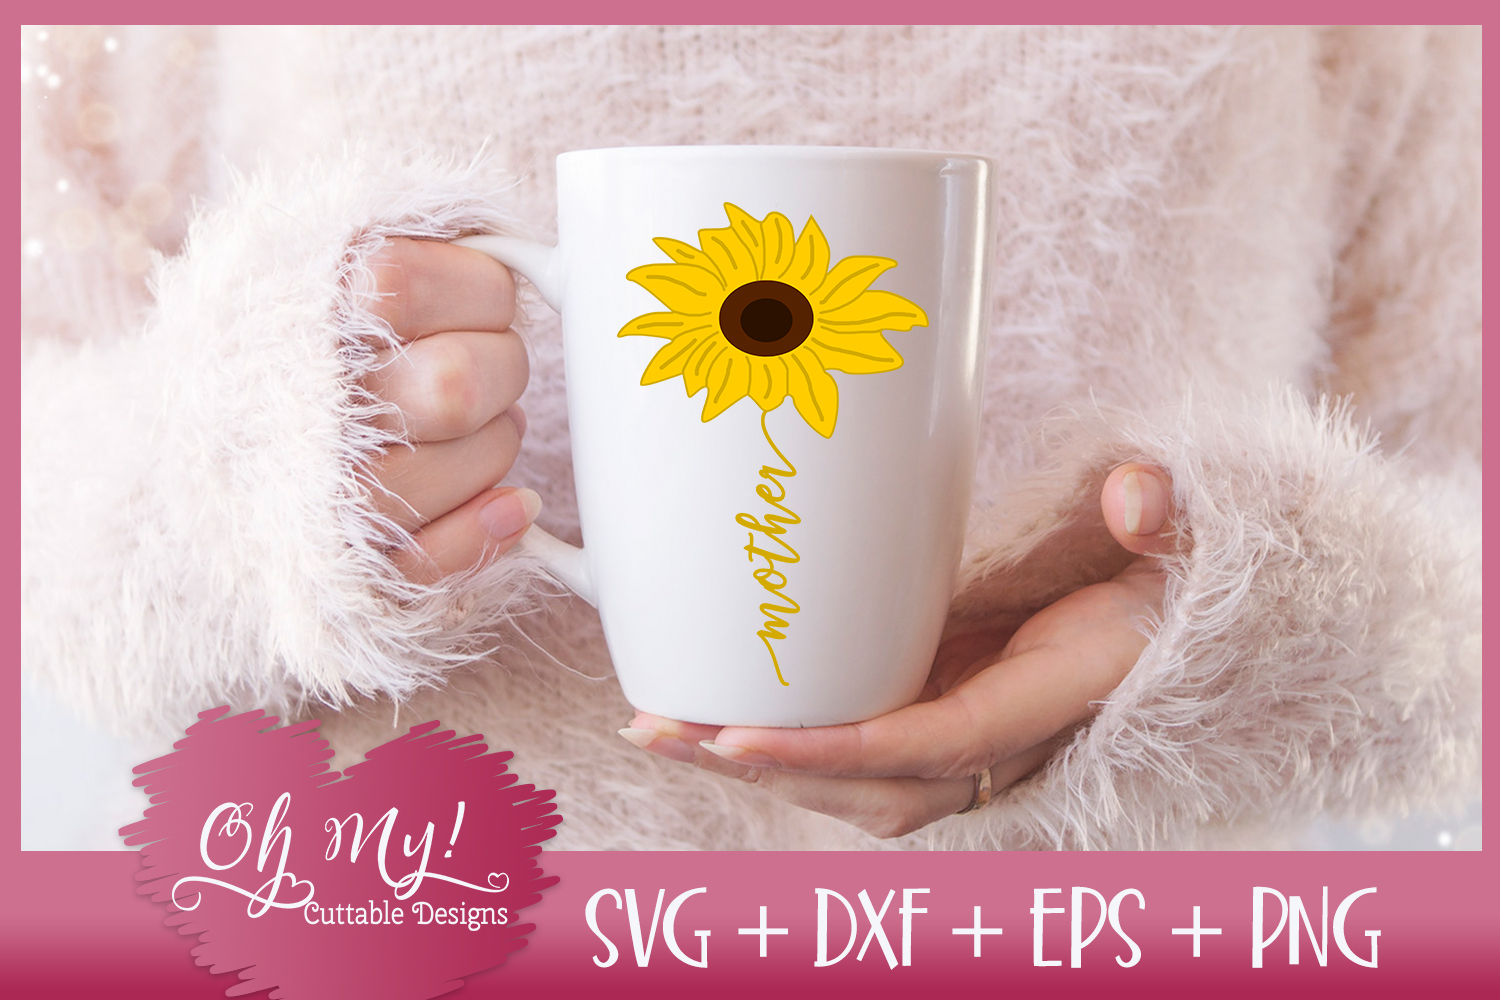 Mother Sunflower - SVG EPS DXF PNG Cutting File example image 2